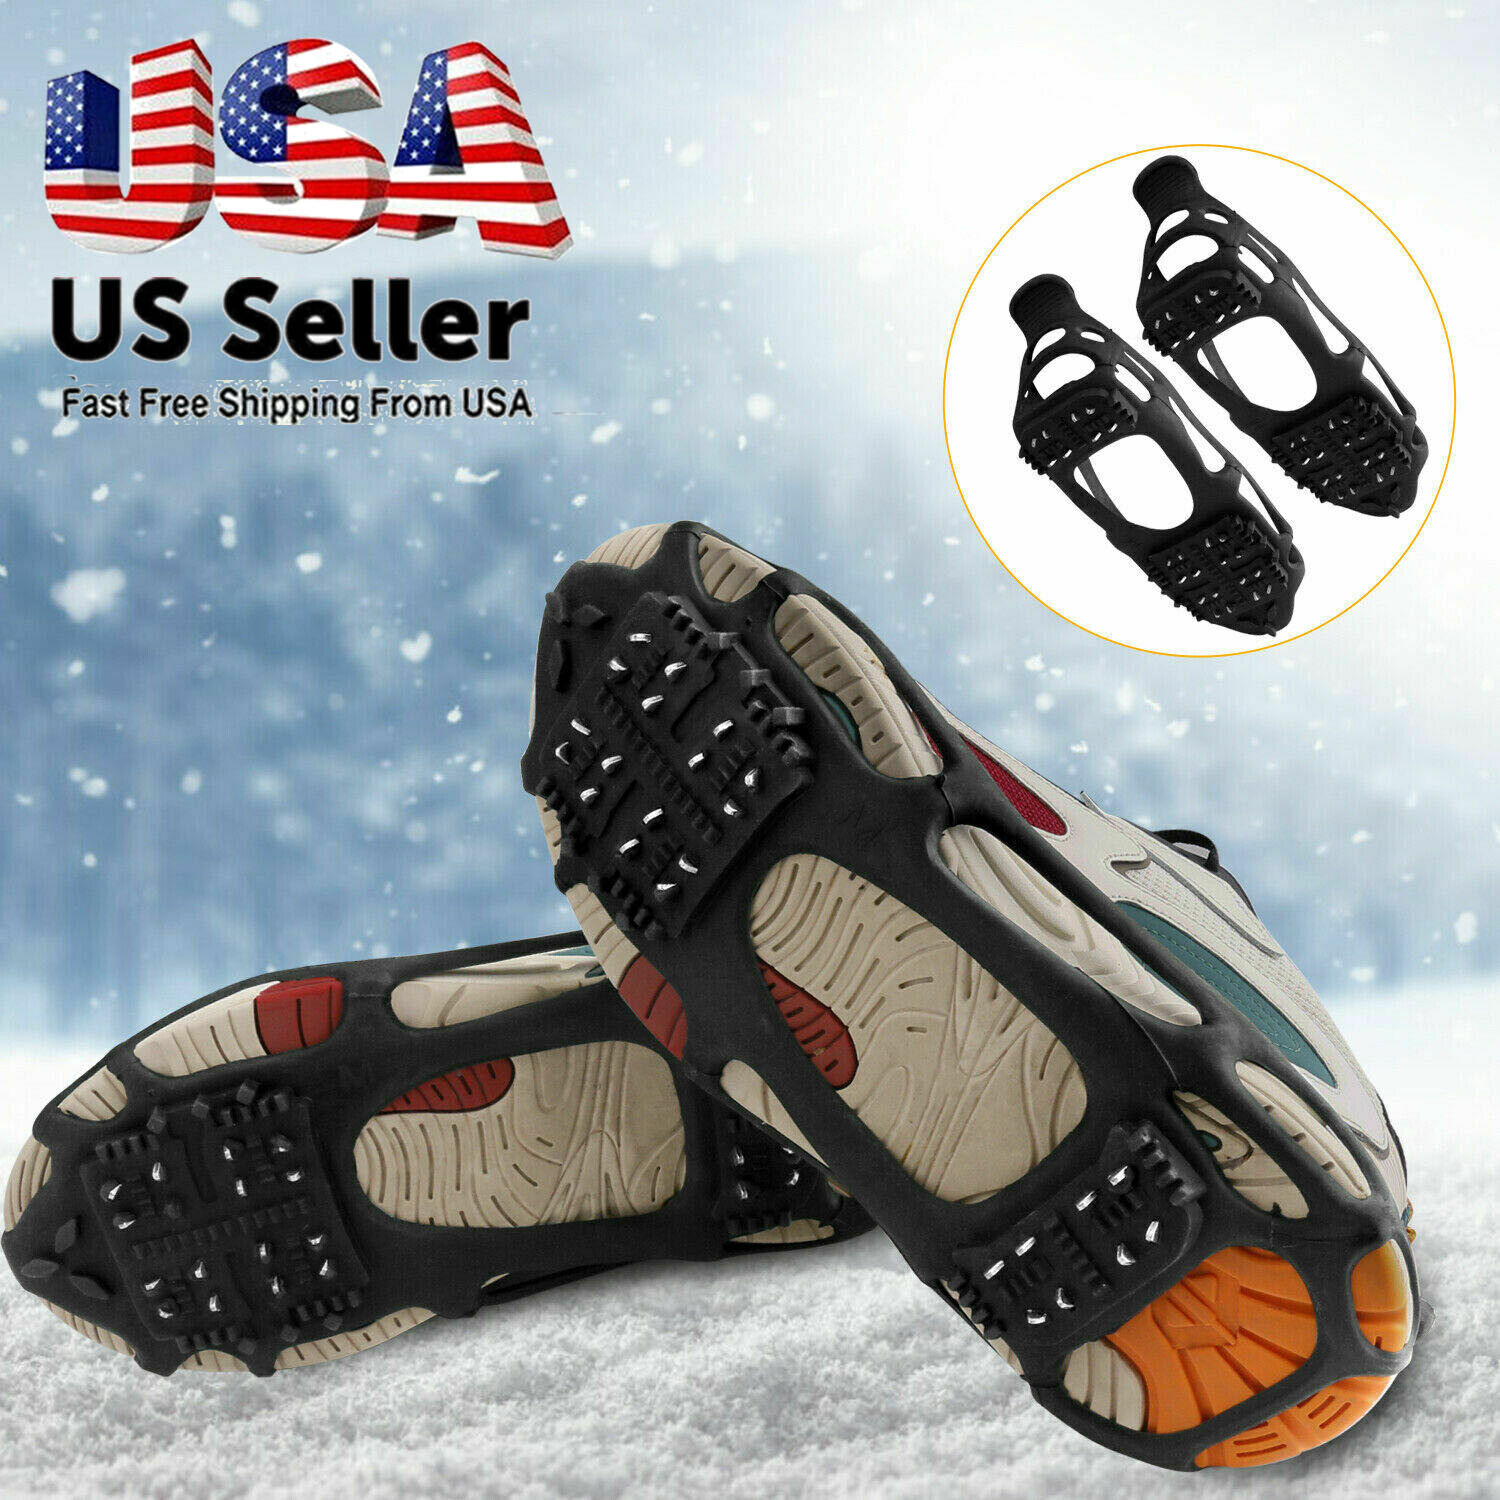 Gather together Anti-Slip Skiing Shoes Cover Climbing Spikes Grips 5 Teeth Crampon Shoes Cleats for Skating Snowy Road